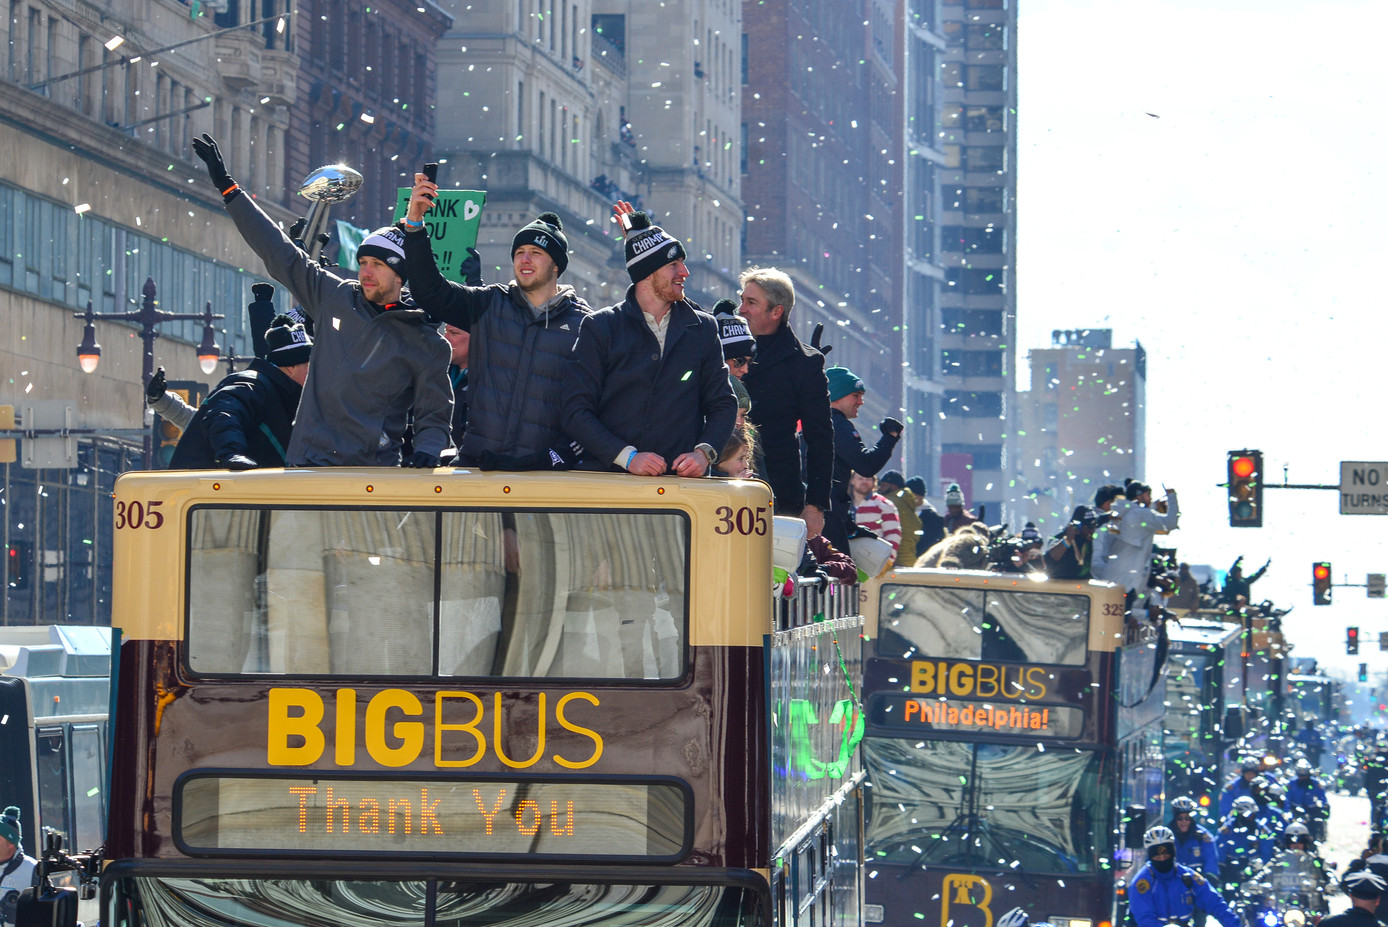 2-8-2018_EaglesParade_credKateFrese-38.j